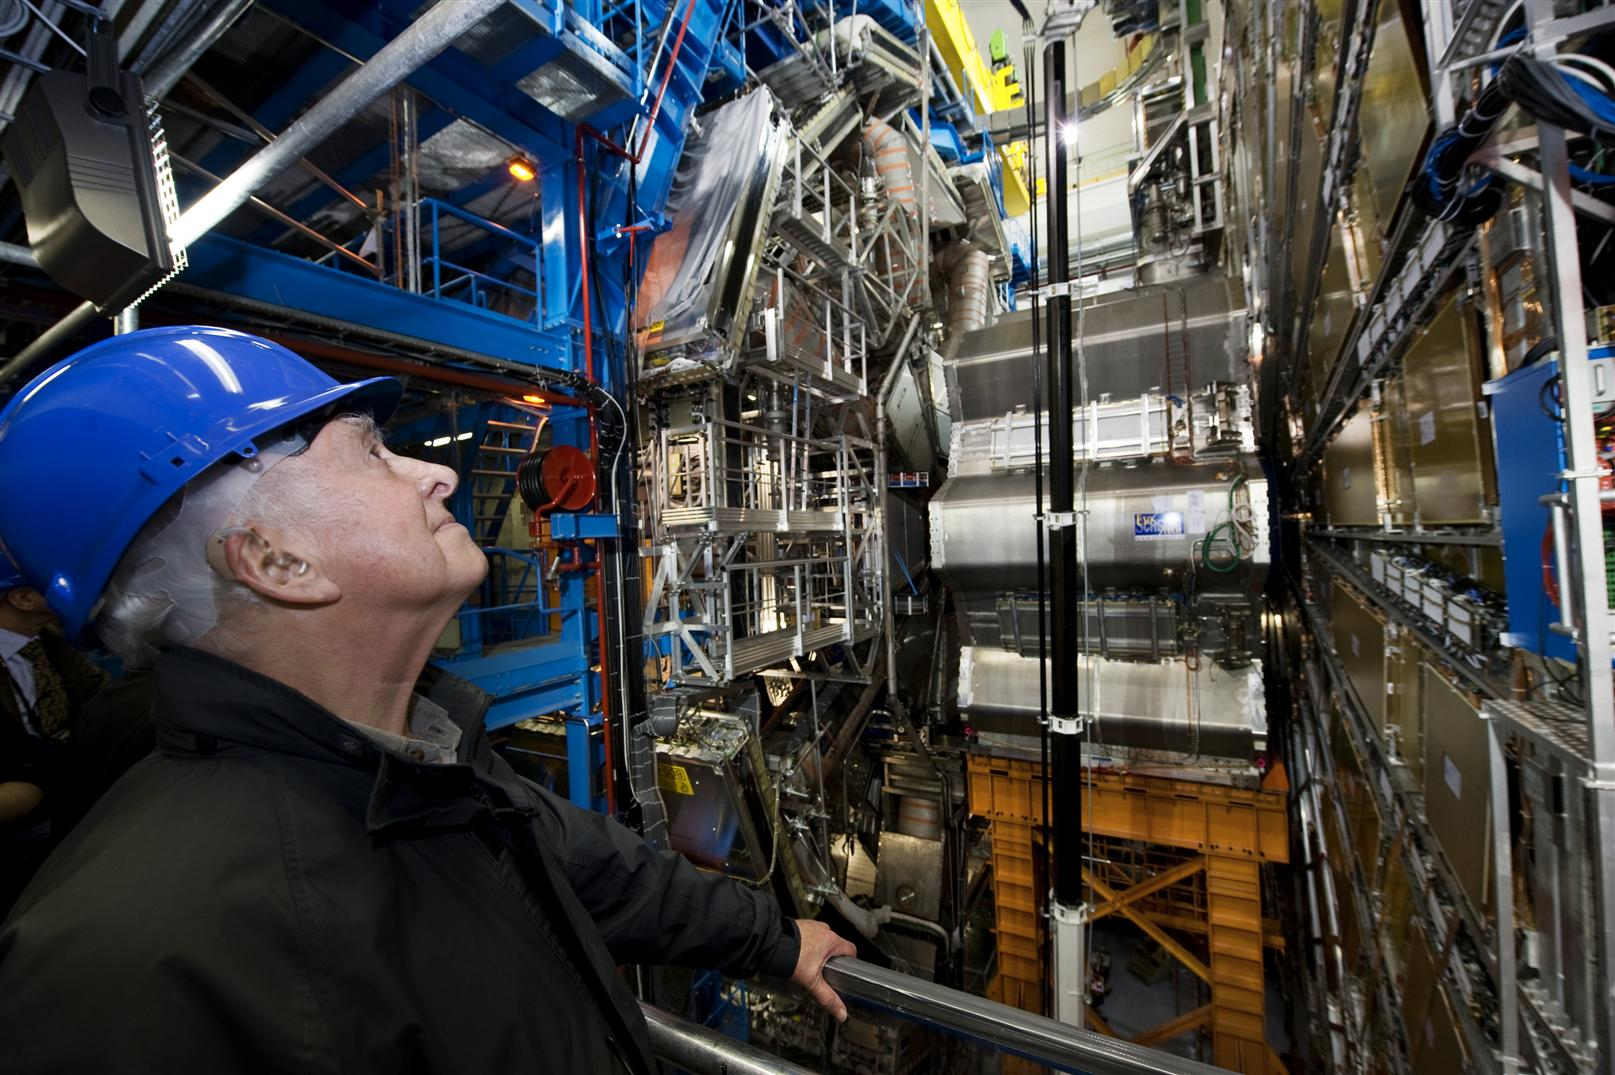 Peter Higgs visits the ATLAS experiment, which may find the elusive Higgs boson